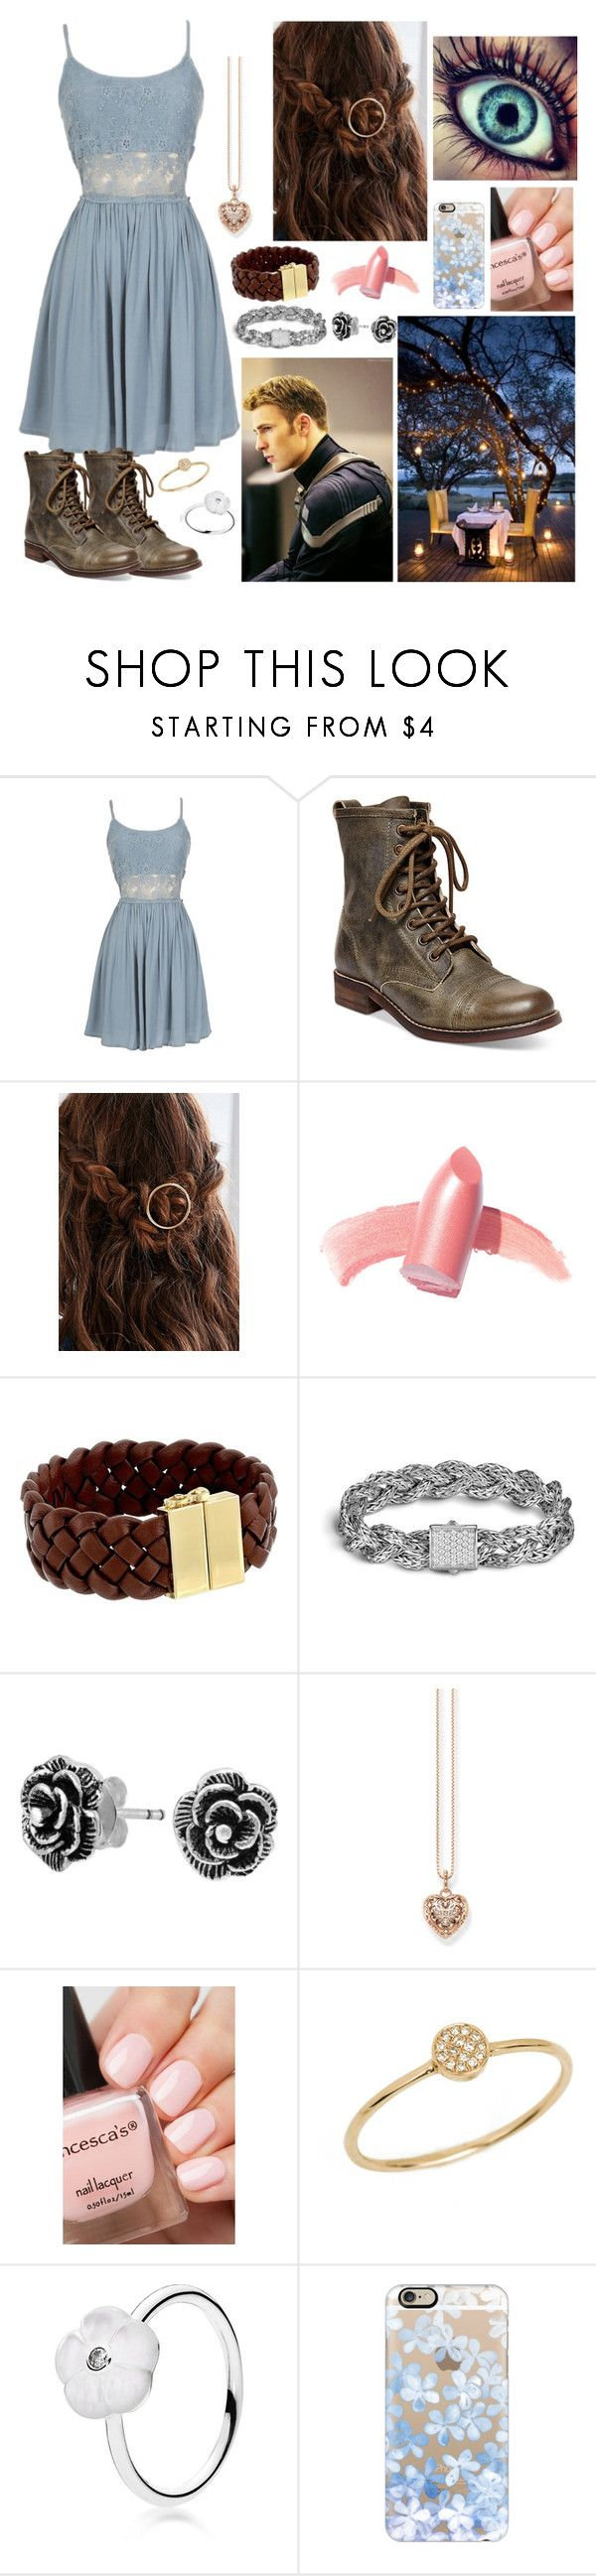 """""""Romantic Dinner With Steve Rogers (Captain America)"""" by brendon-urie-enthusiast ❤ liked on Polyvore featuring Steve Madden, Elizabeth Arden, Cole Haan, John Hardy, Bling Jewelry, Thomas Sabo, Anine Bing, Pandora and Casetify"""